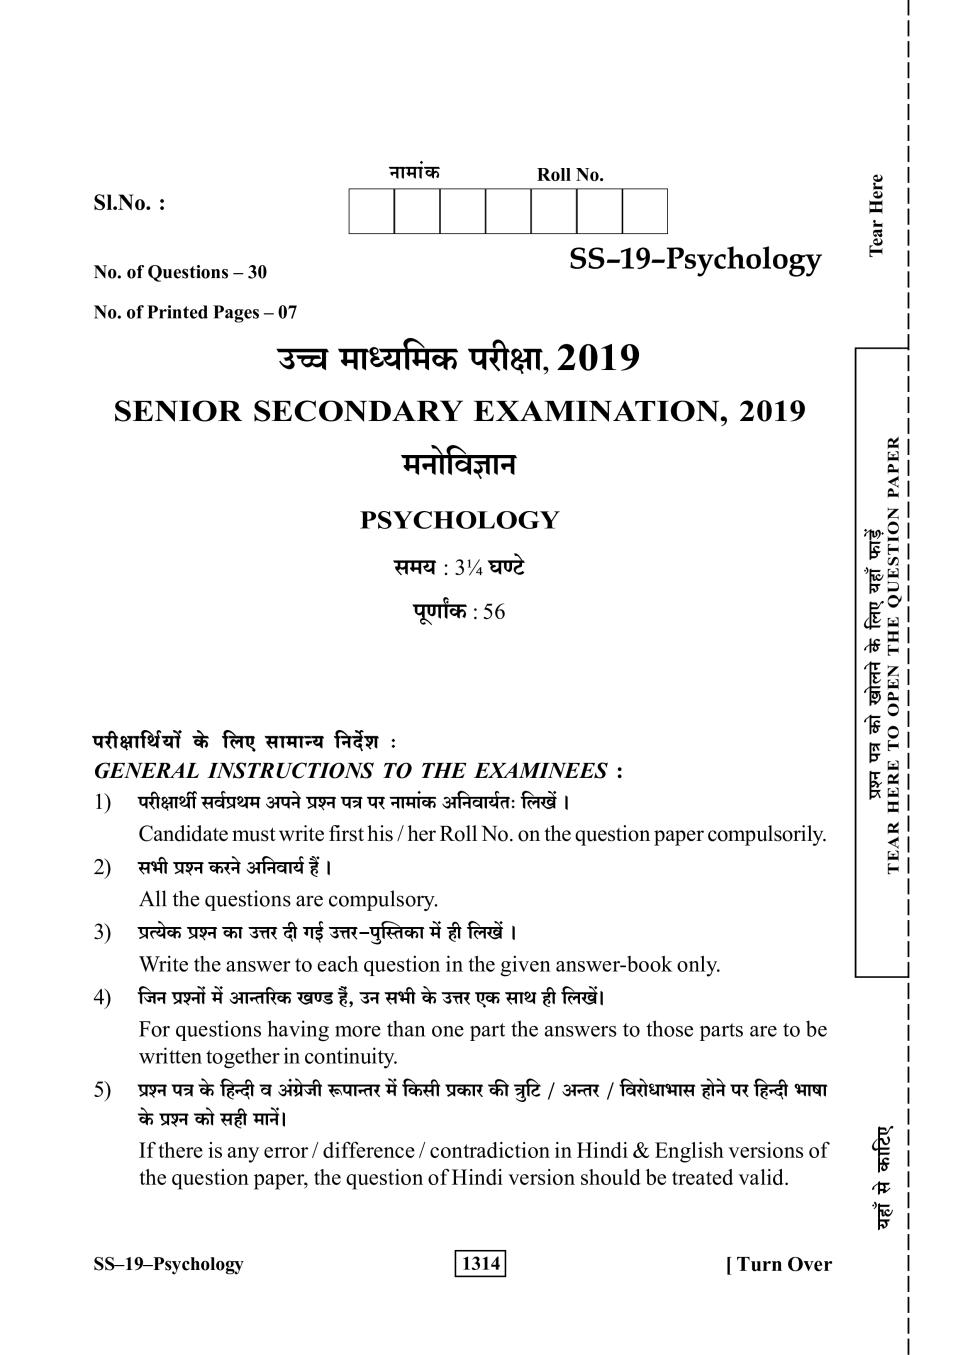 Rajasthan Board Sr. Secondary Psychology Question Paper